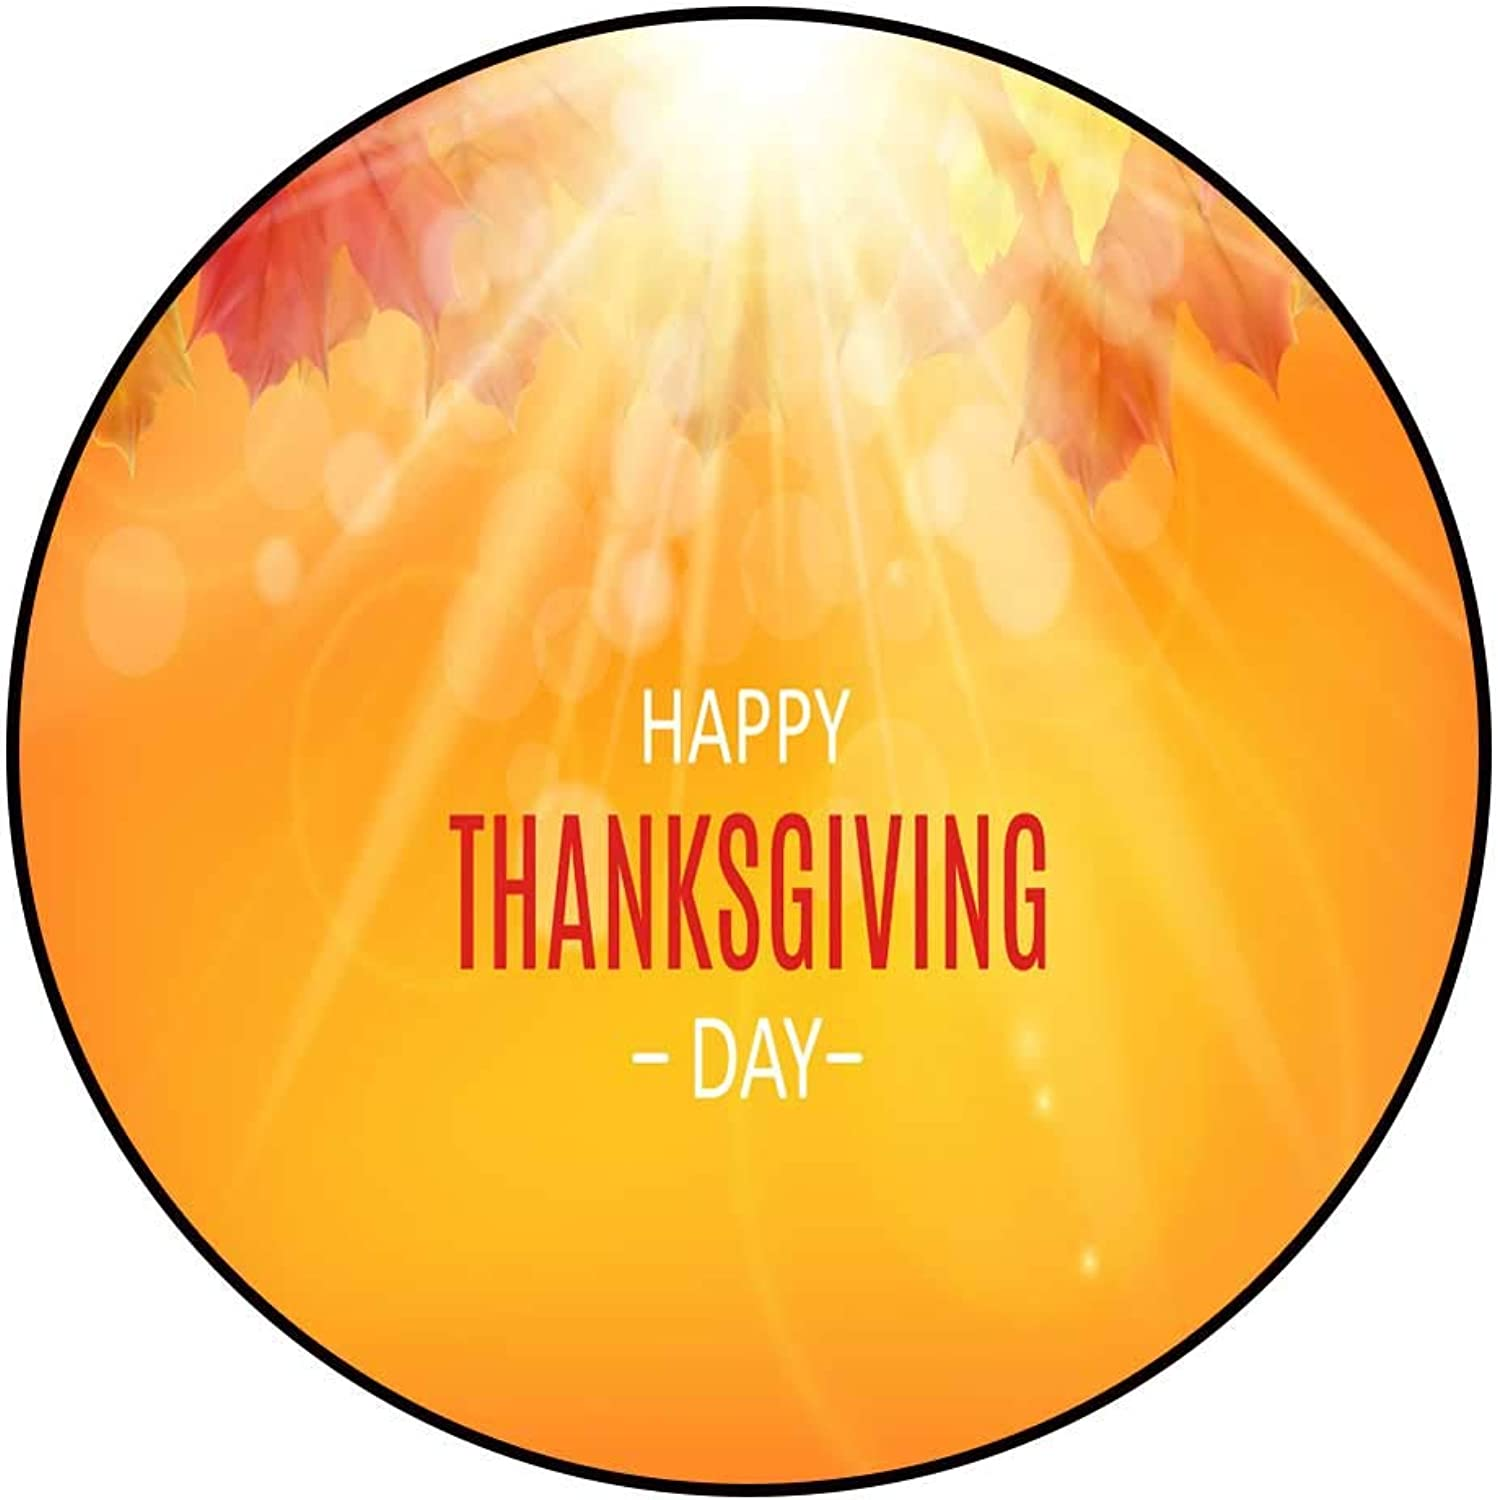 Hua Wu Chou Round Exercise matround BBQ Grill mat D3'6 1.1m Happy Thanksgiving Day Background with Shiny Autumn Natural Leaves Vector Illustration12